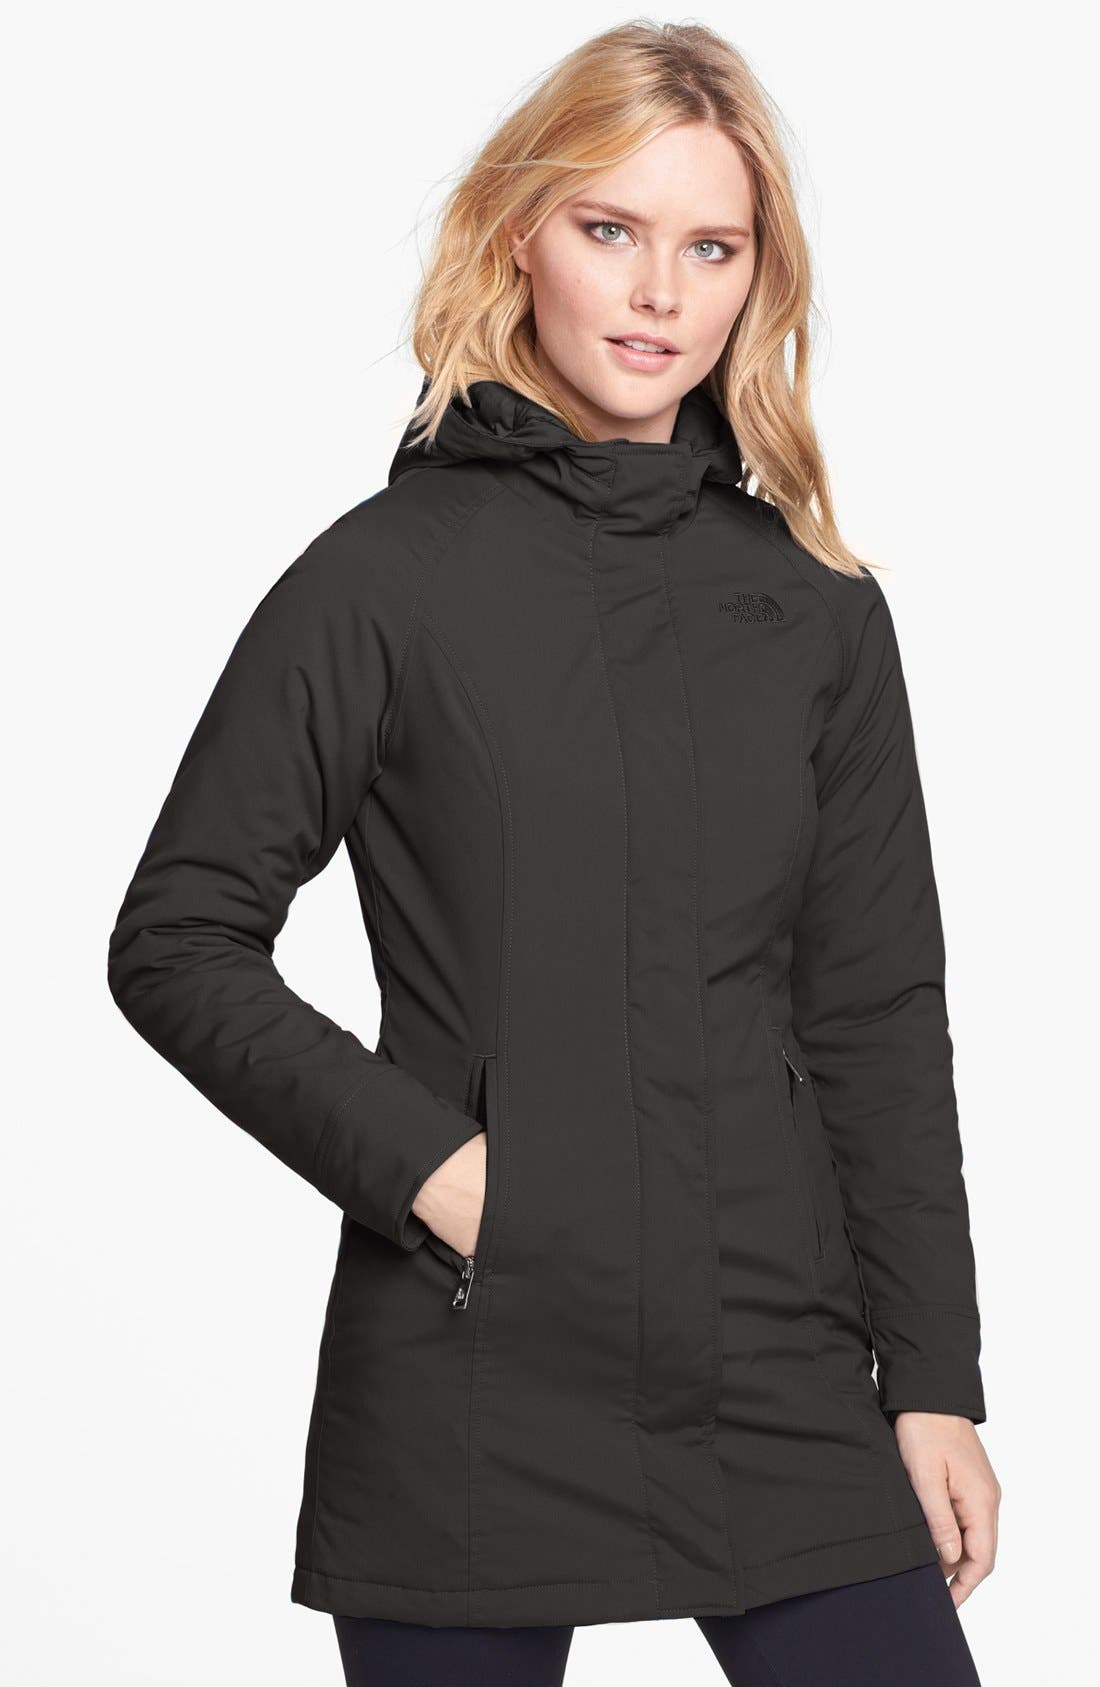 THE NORTH FACE, 'Lola' Soft Shell Trench Coat, Main thumbnail 1, color, 001